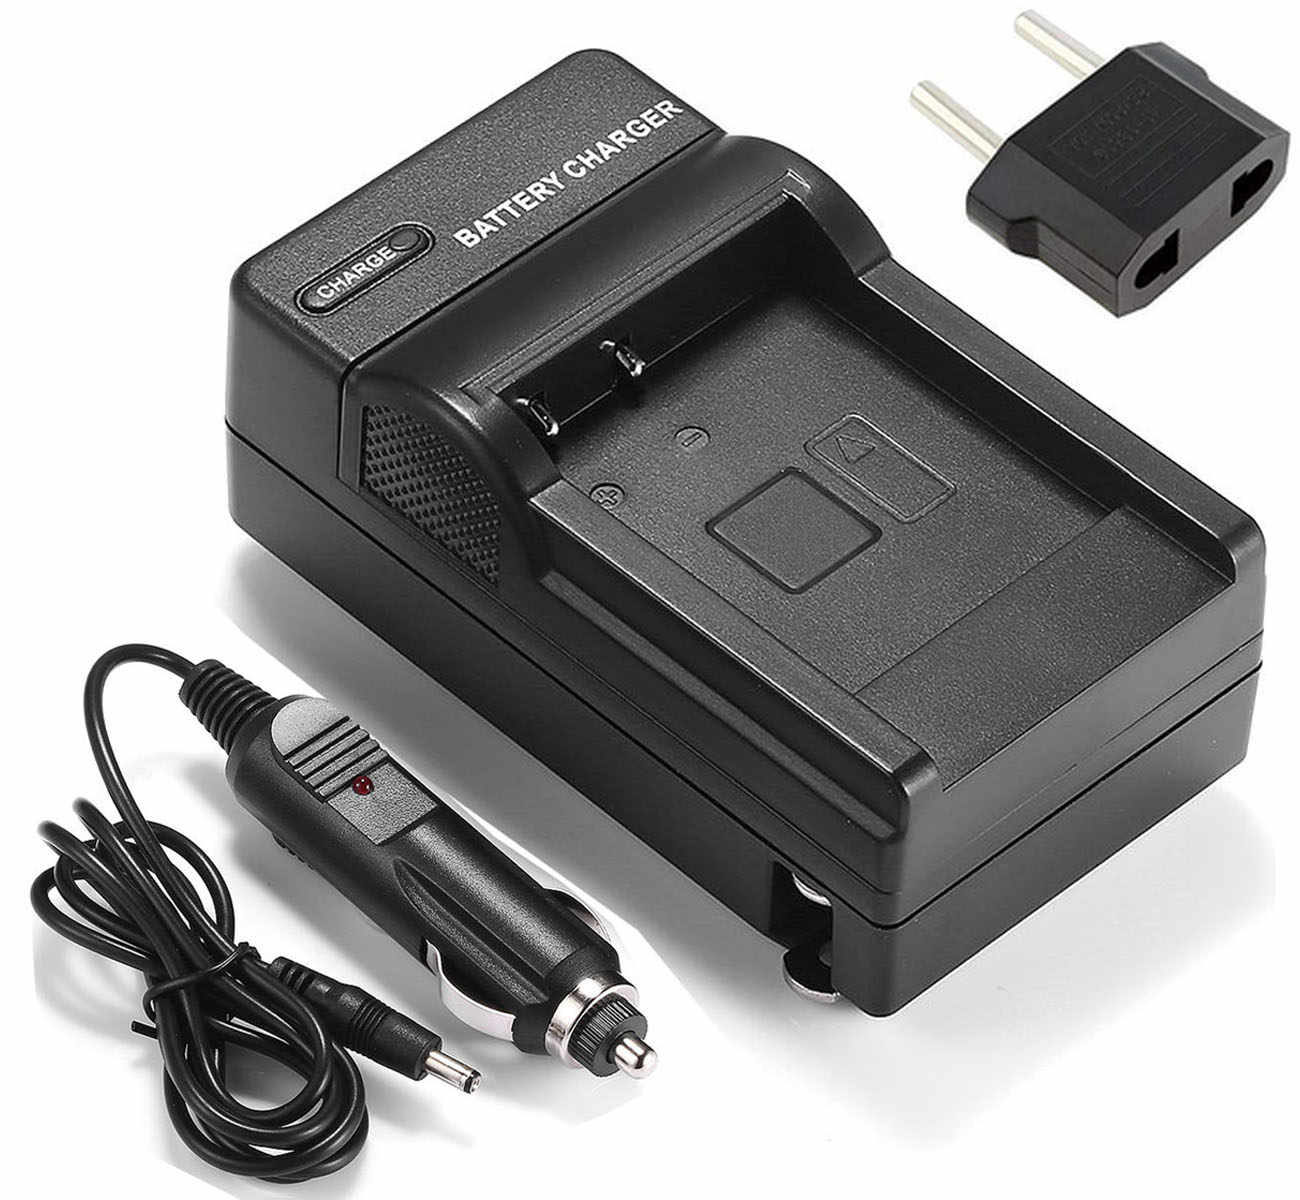 SCD55 SCD34 LCD USB Travel Battery Charger for Samsung SCD33 SCD60 SCD39 SCD67 Digital Video Camcorder